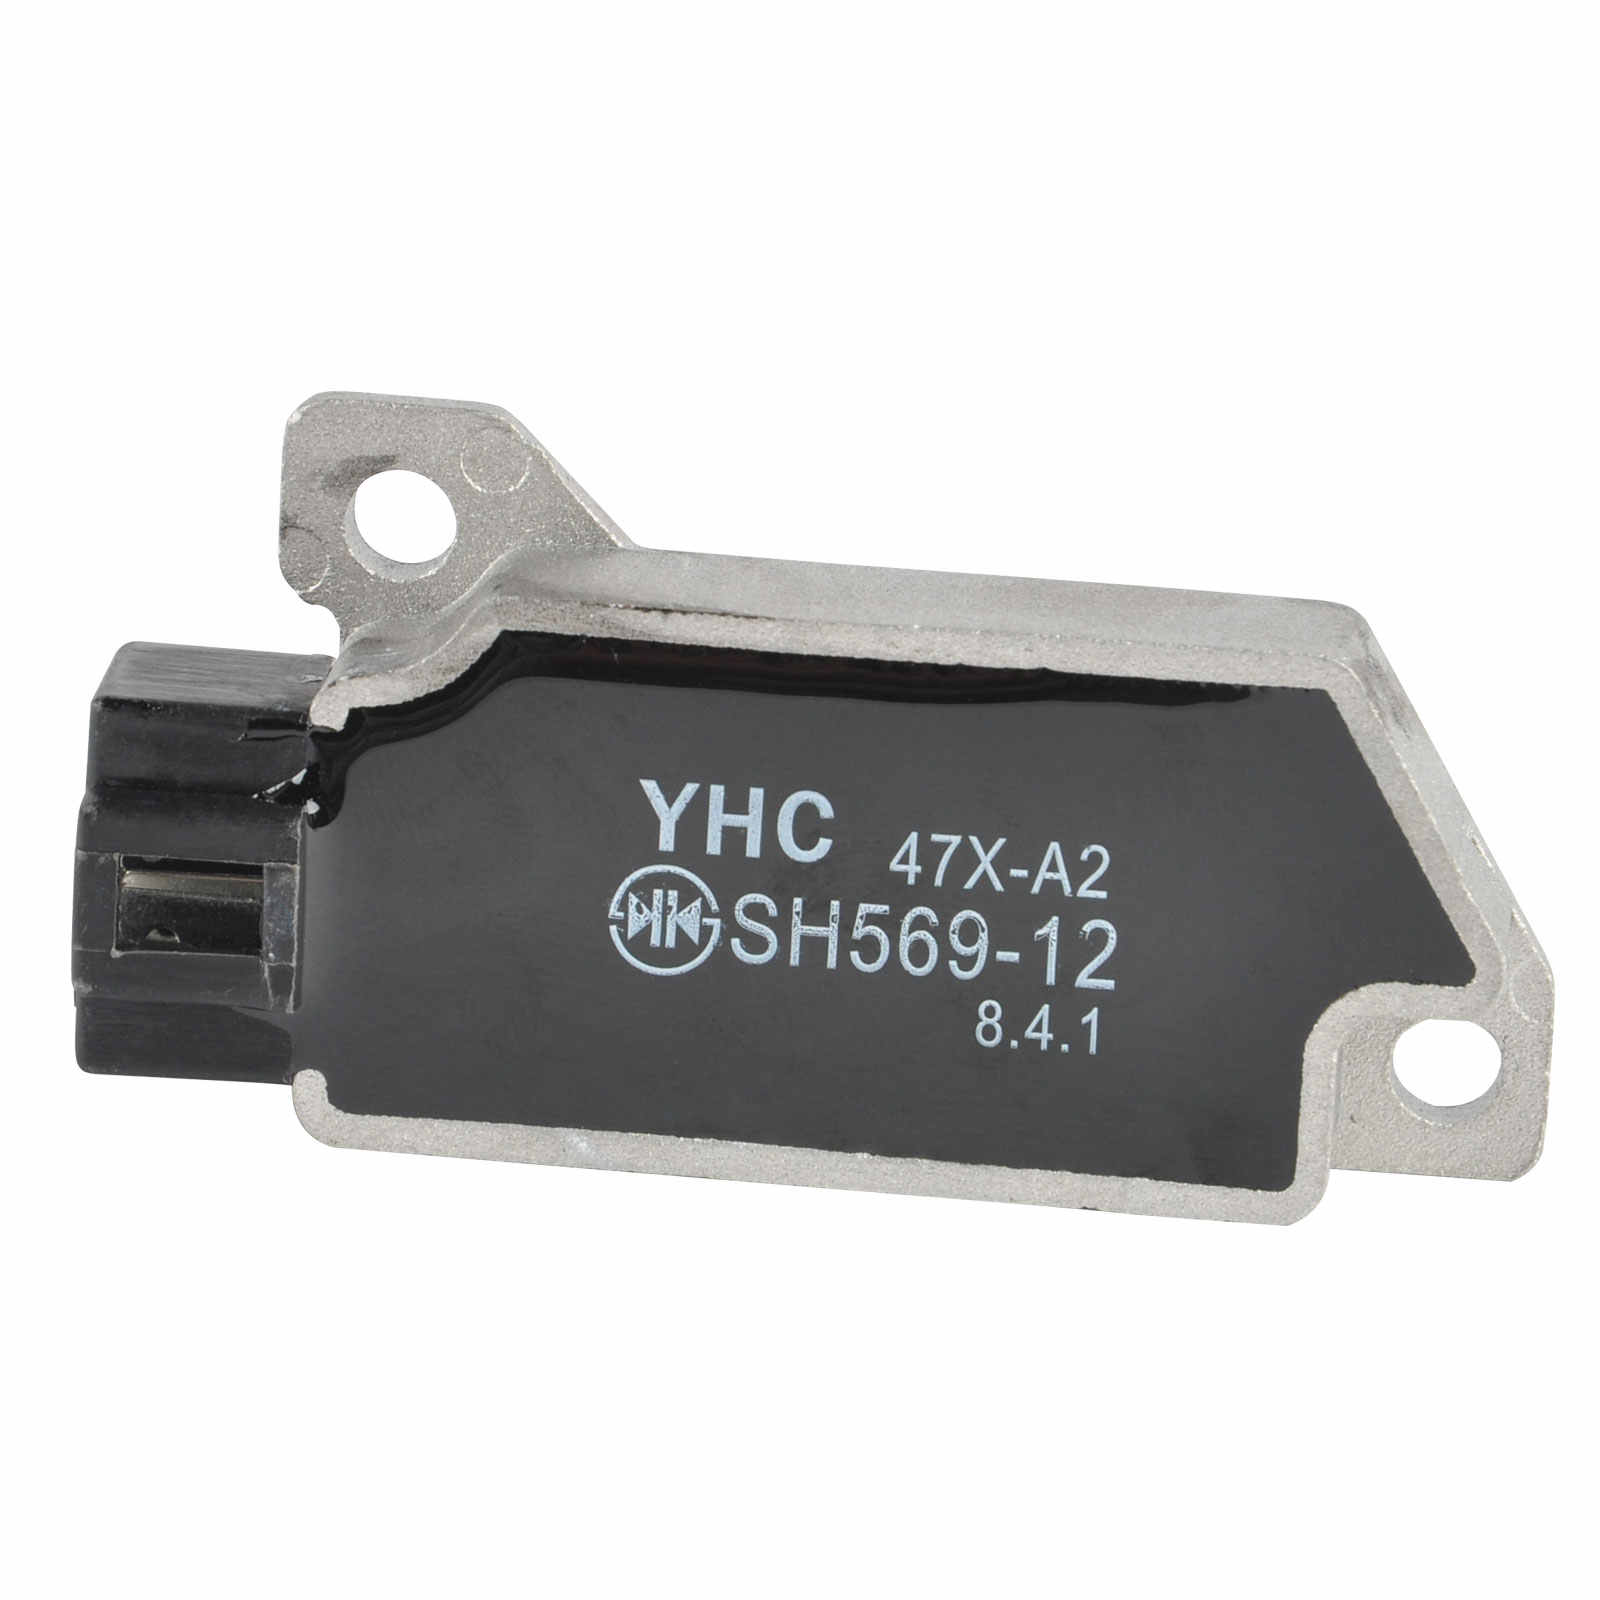 1PC High Quality Motorcycle Voltage Rectifier Regulator 8.5 x 4 x 1.5cm For Yamaha FZR 600 600R 400 400S XV250 Virago